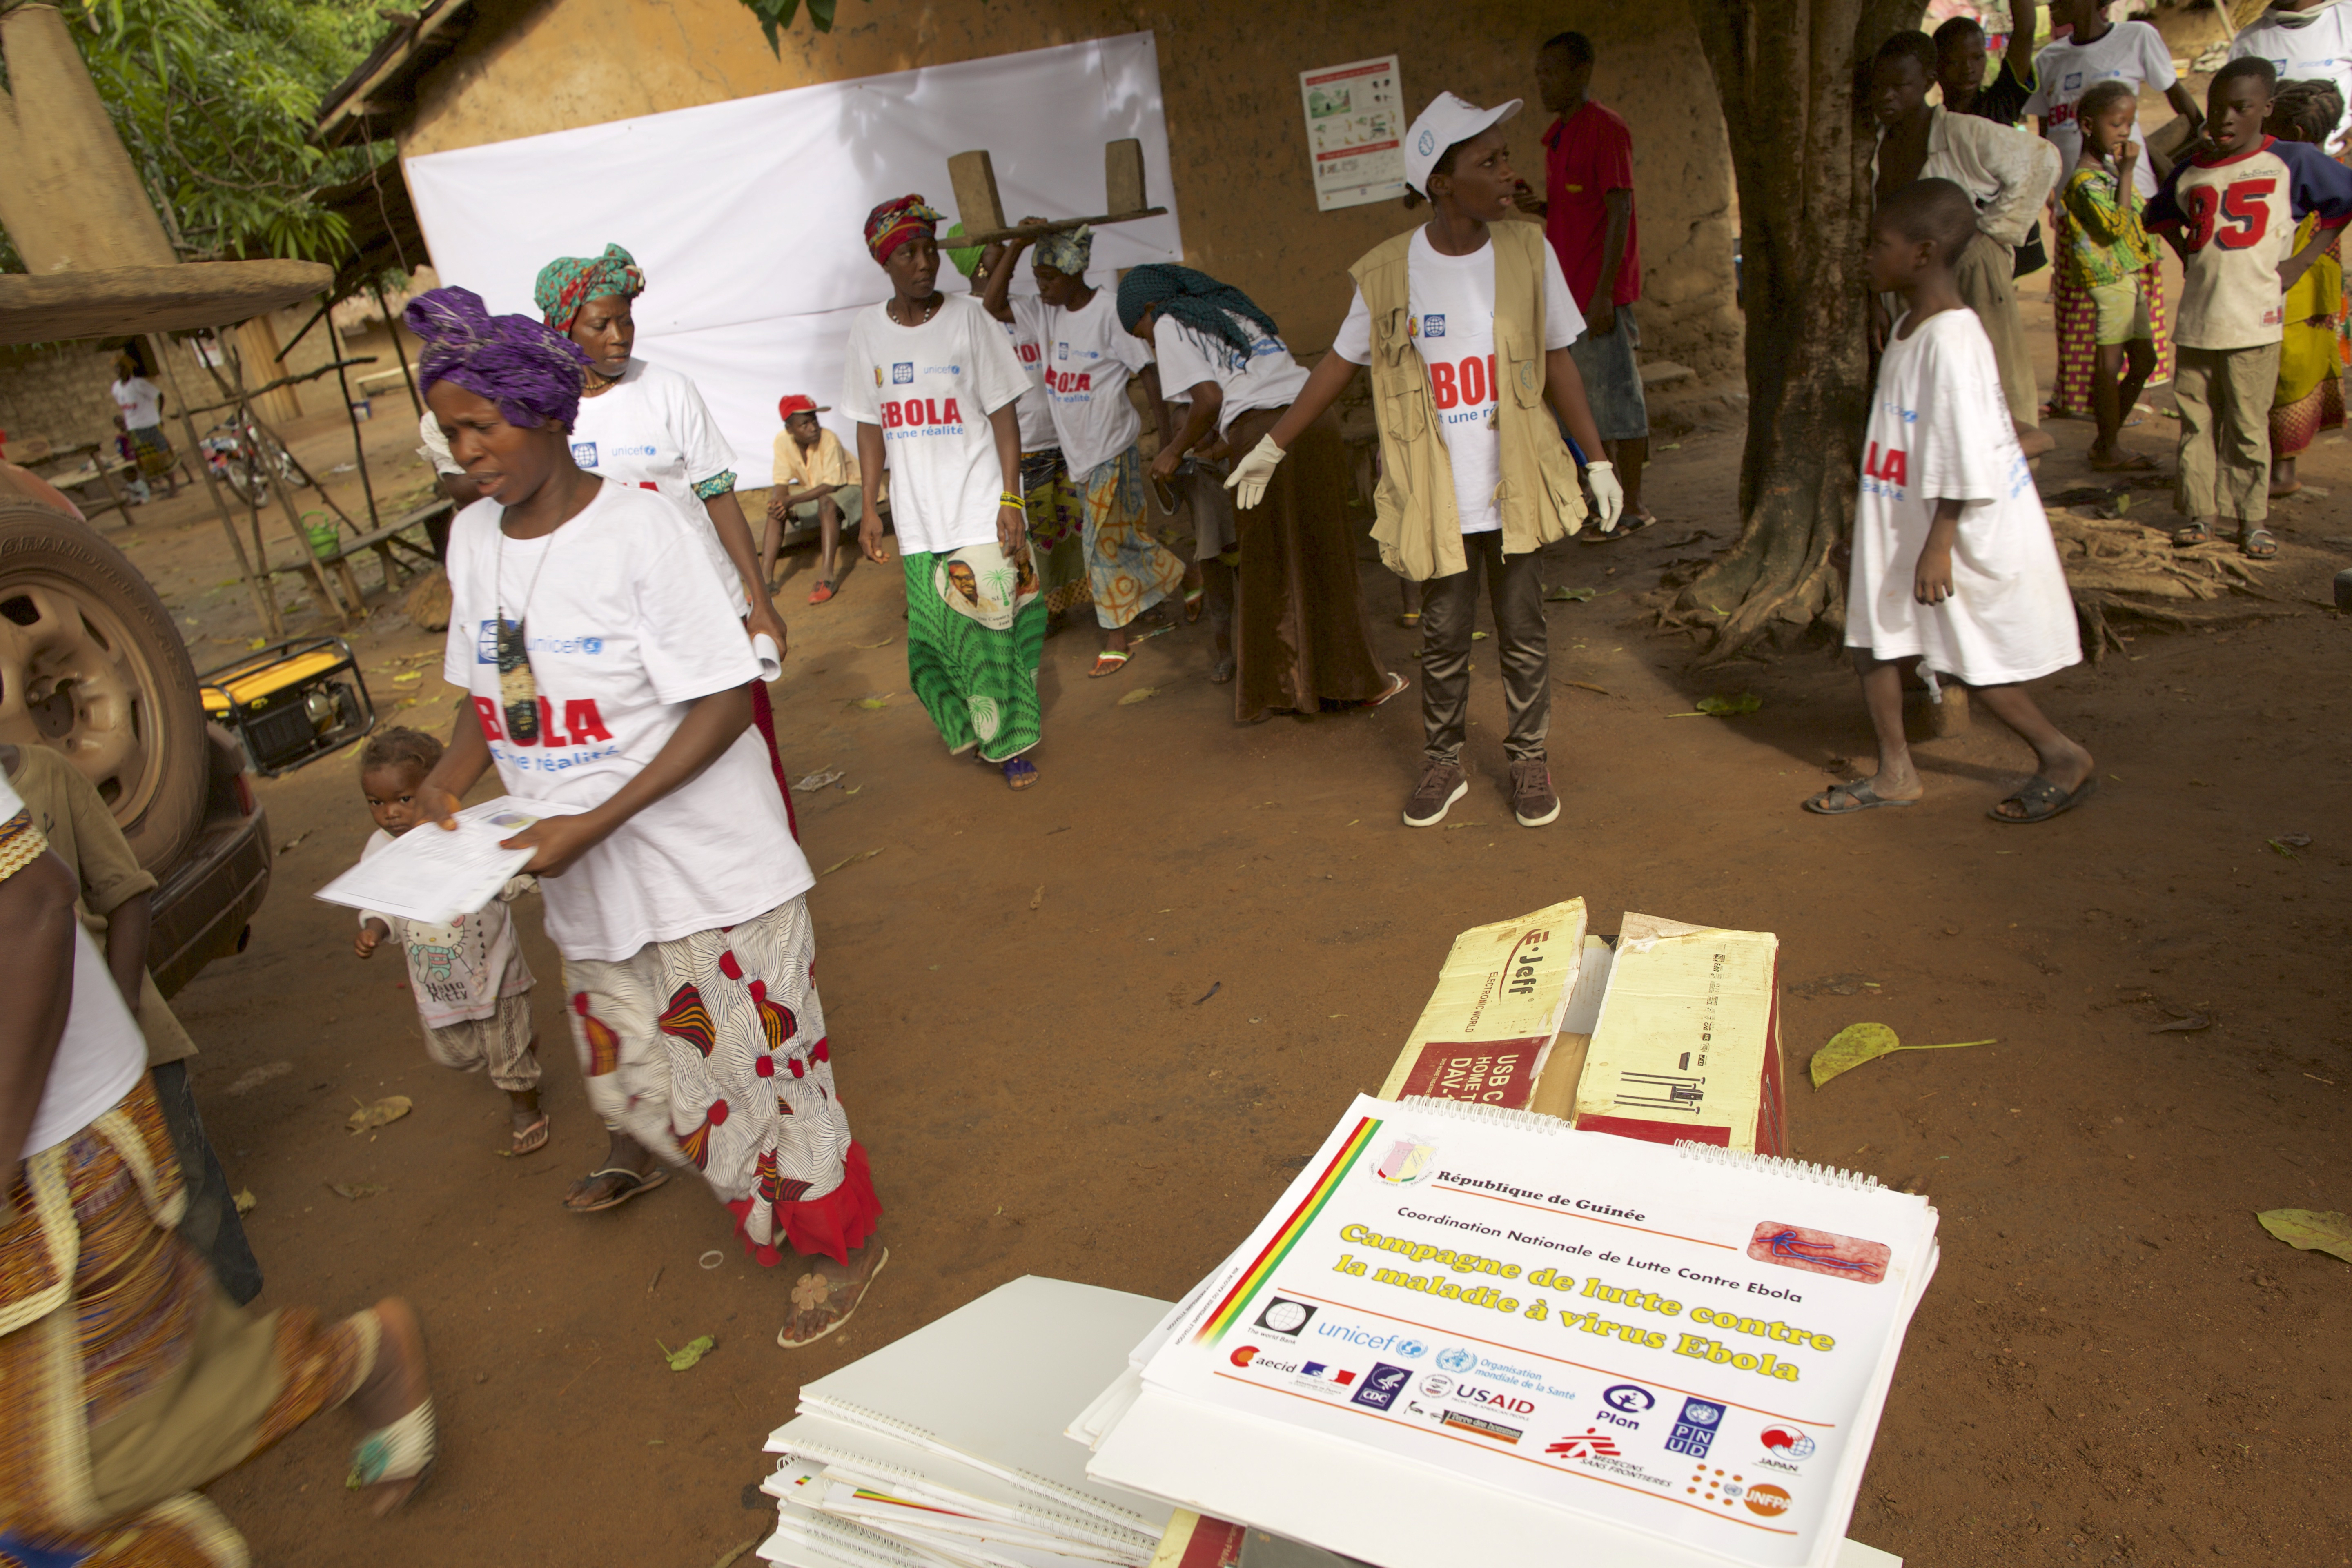 Members of UNICEF's social mobilization team in Sikhourou village use illustrated booklets to educate residents about the symptoms of Ebola and how to avoid becoming infected. ©UNICEF Guinea/2015/Tim Irwin